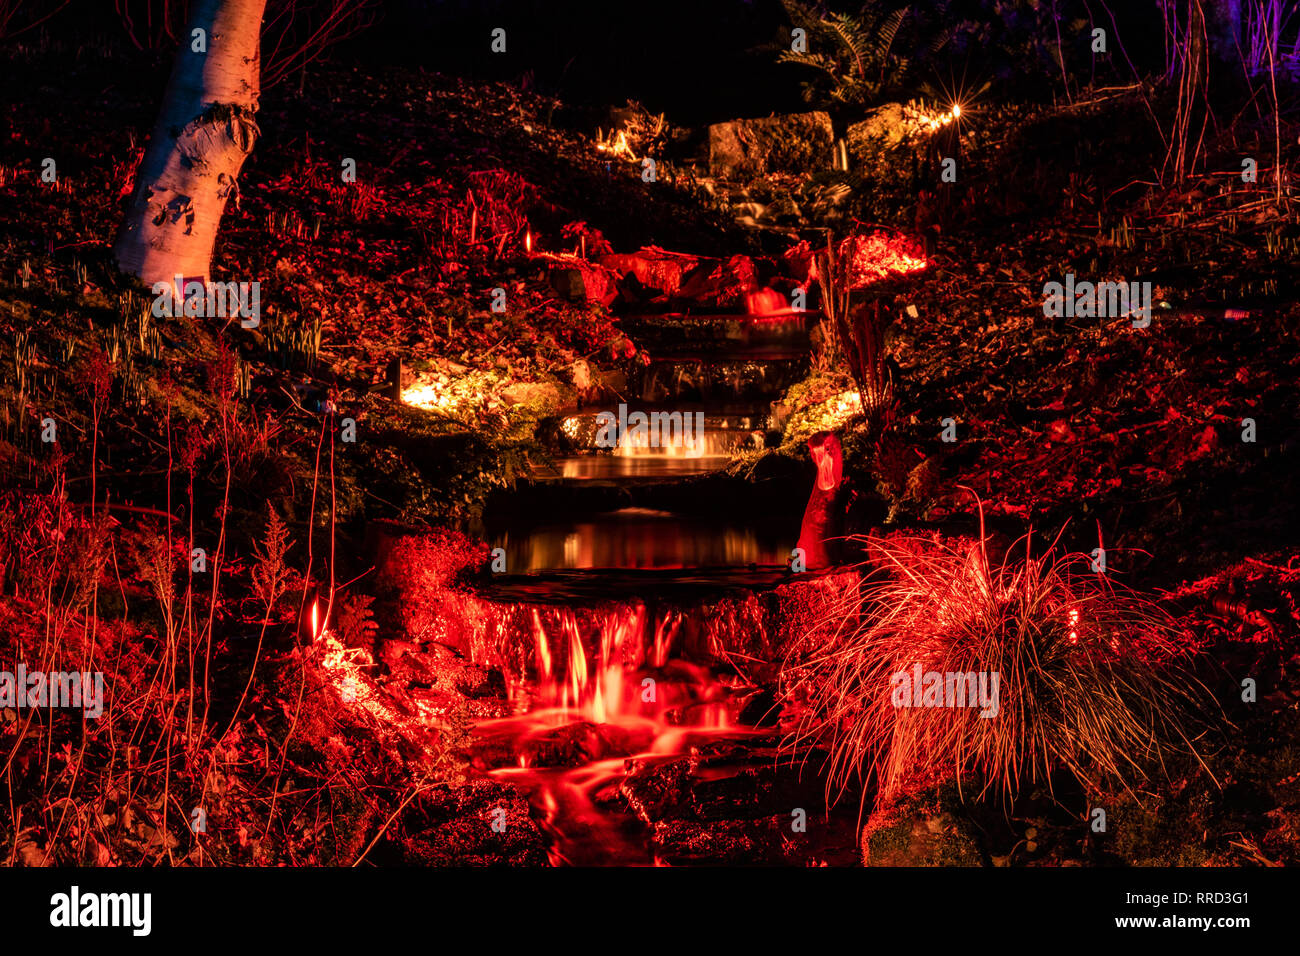 Colourful Winter Glow Event. Night View of Red Lit Plants and Stream With Small Waterfall and Reflections at a Winter event, RHS Rosemoor, Torrington. - Stock Image